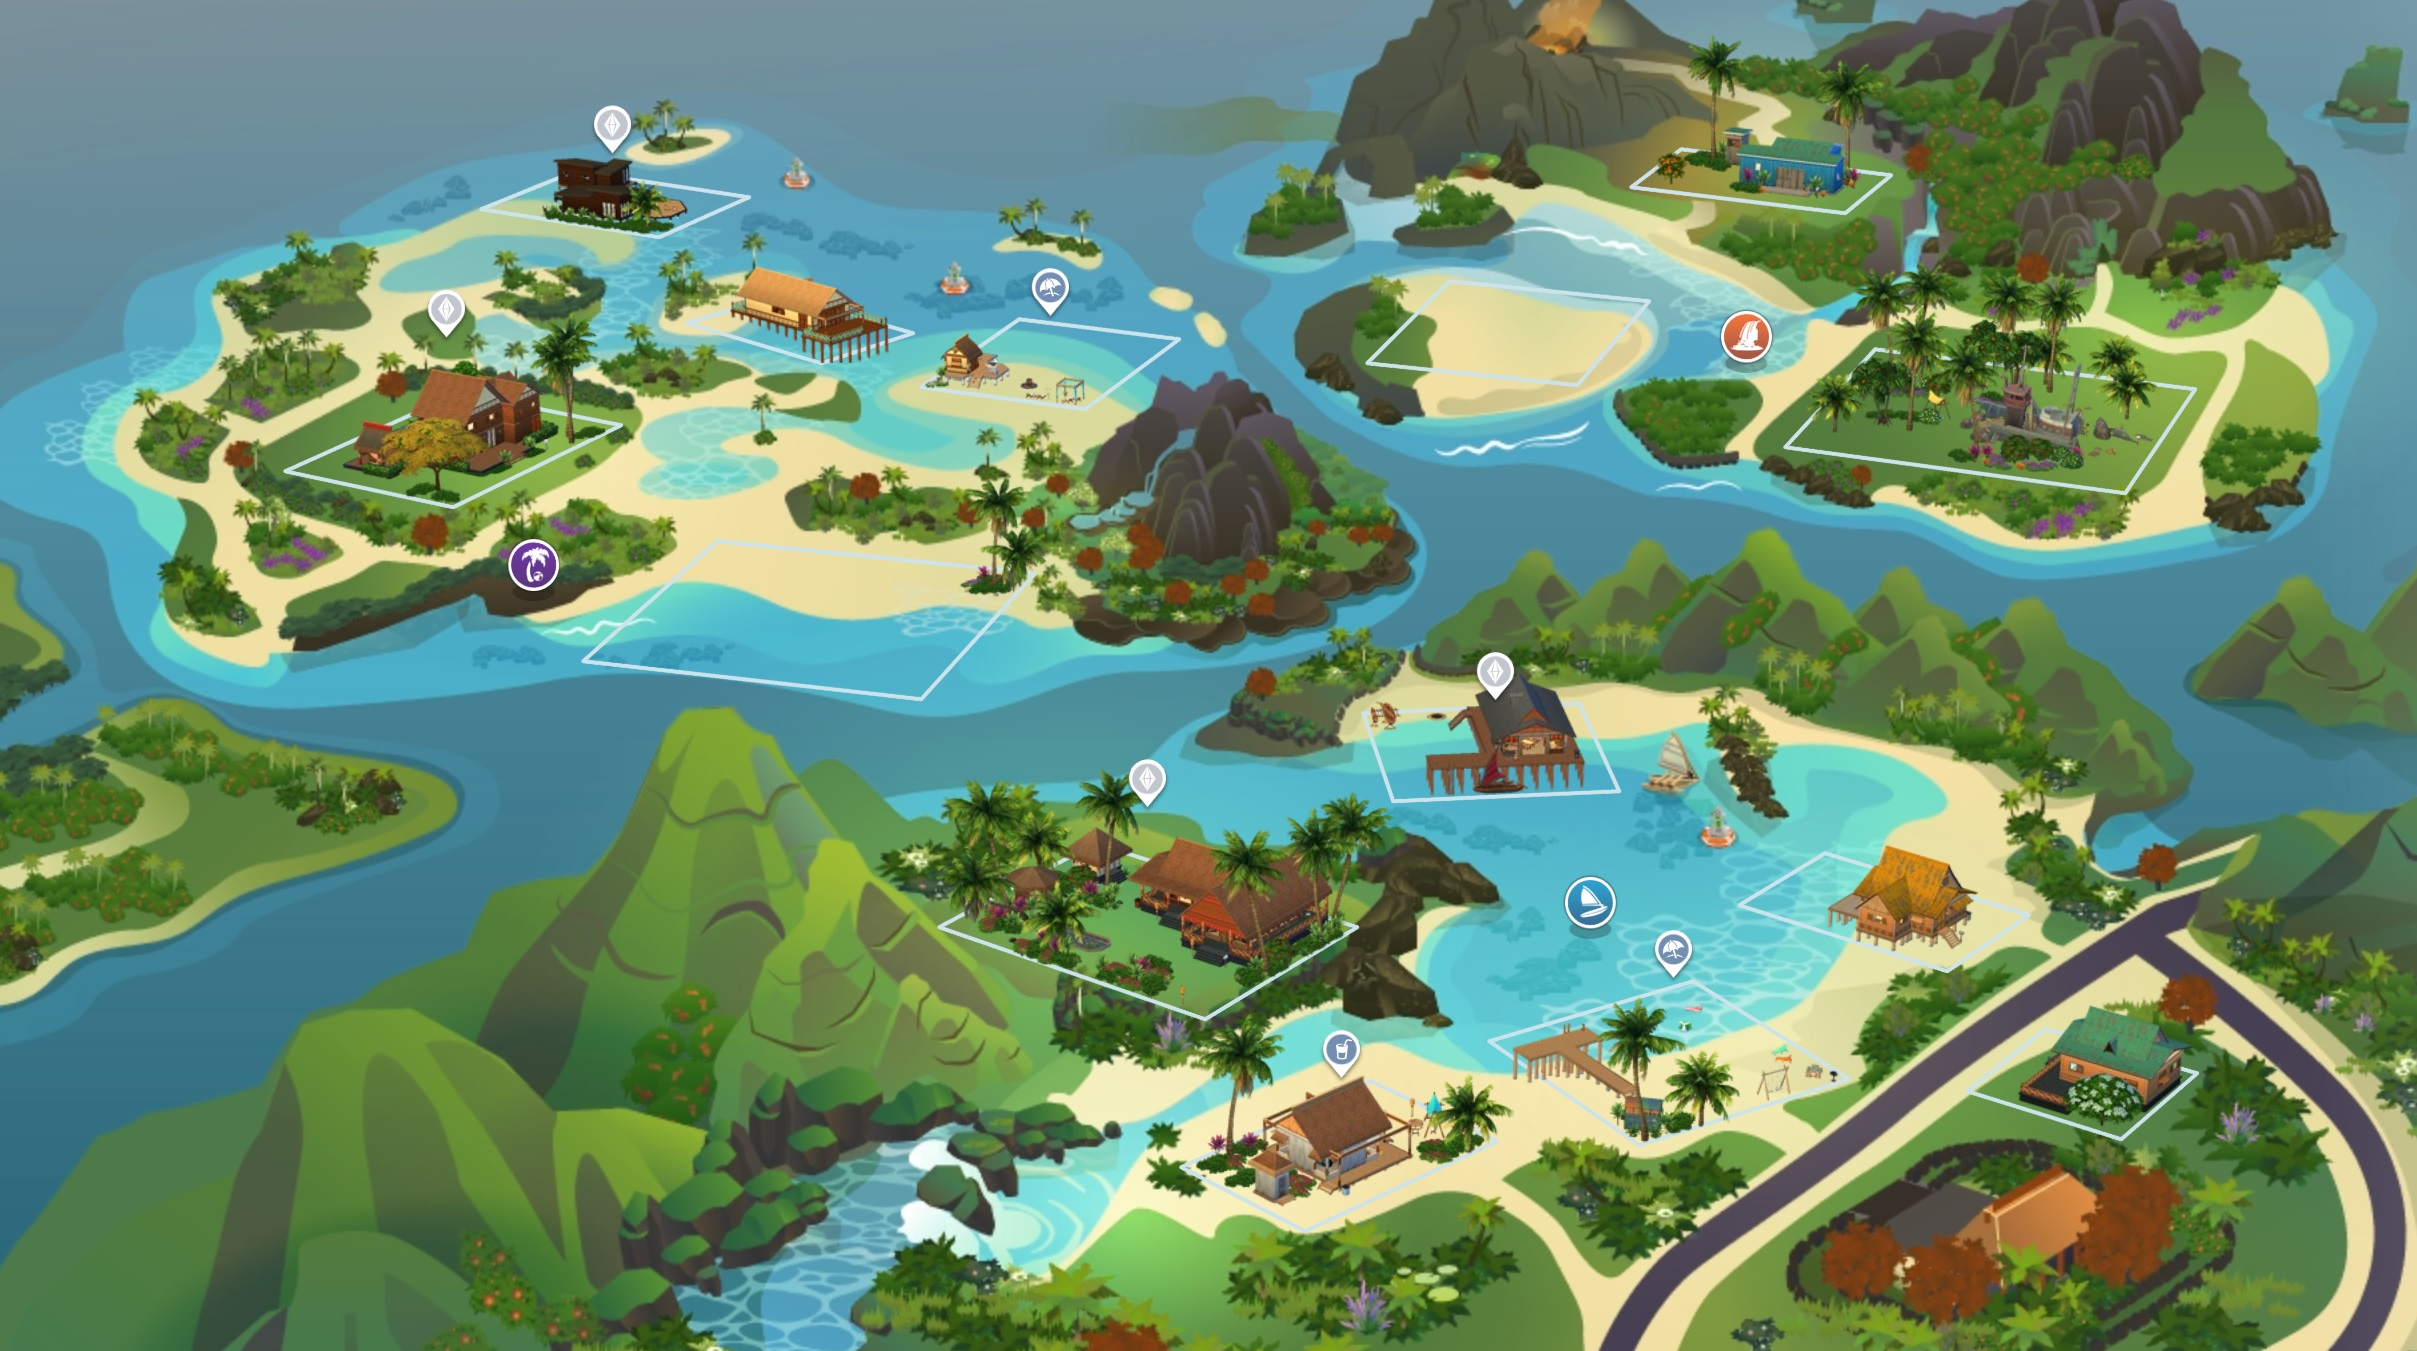 The Sims 4's Island Living is one of the chillest expansions yet